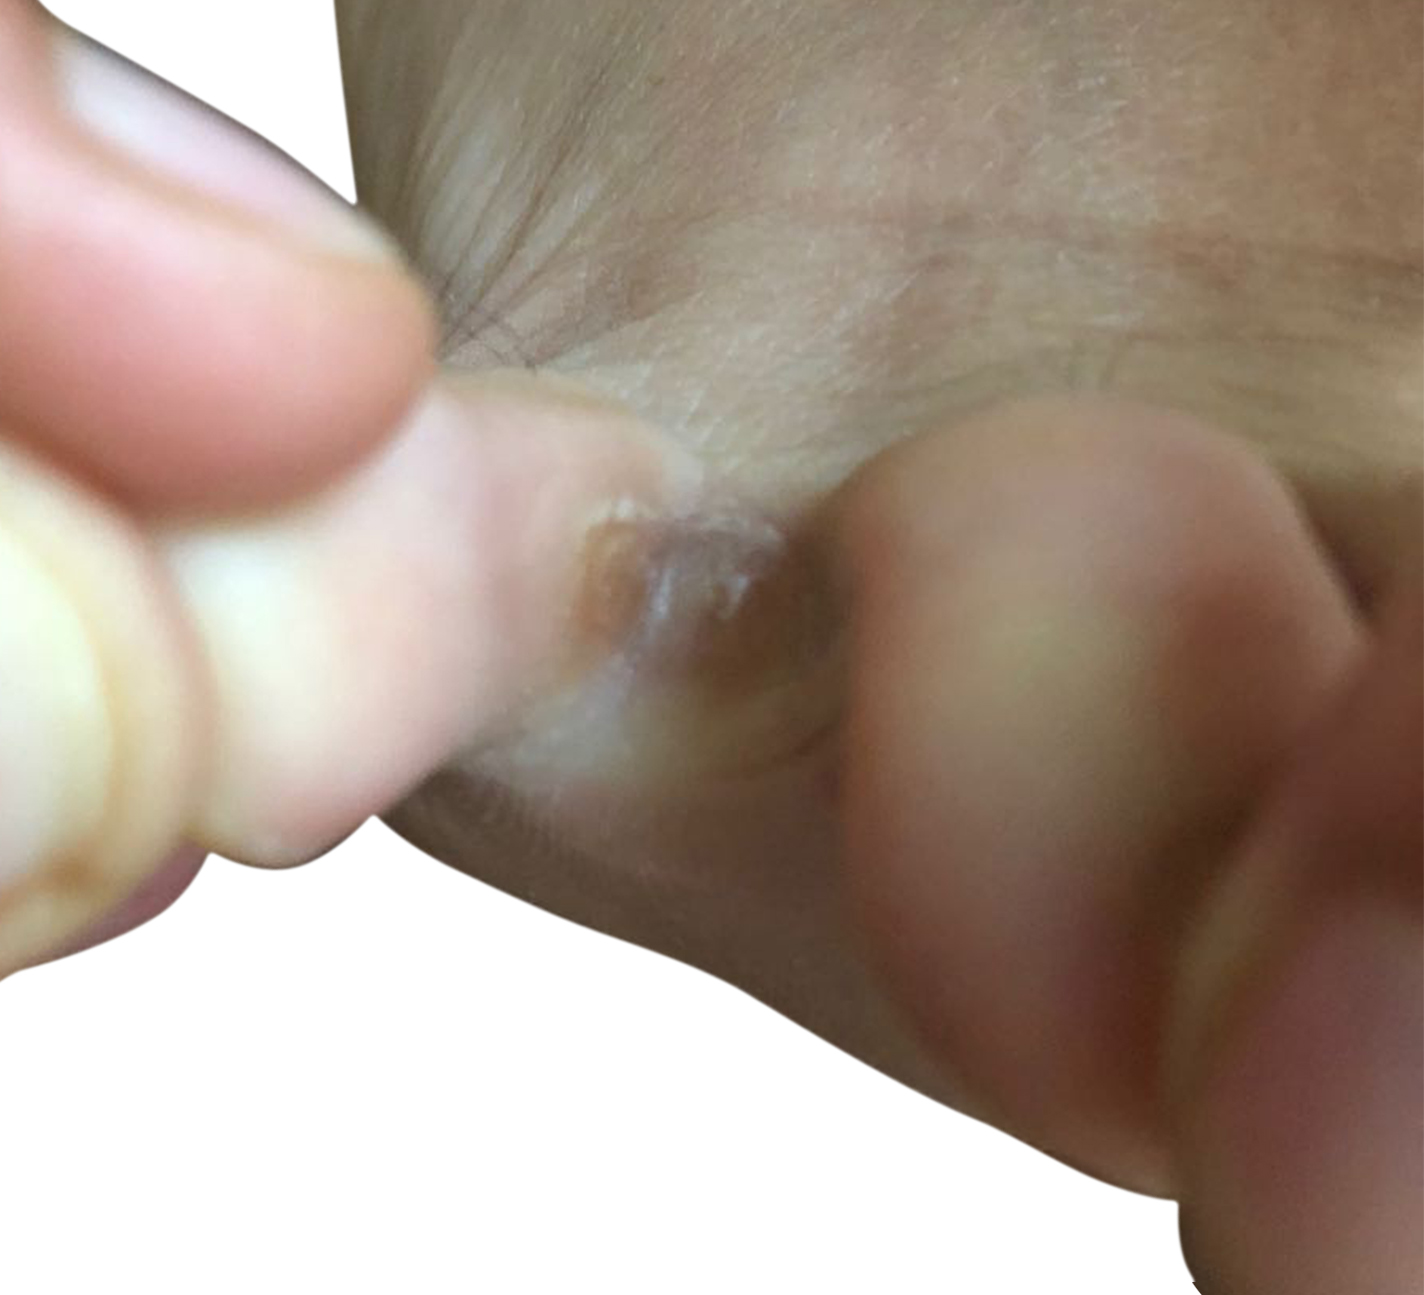 http://dubaipodiatry.com/wp-content/uploads/2019/03/Dubai-Podiatry-Centre-Toe-corn-1.jpg